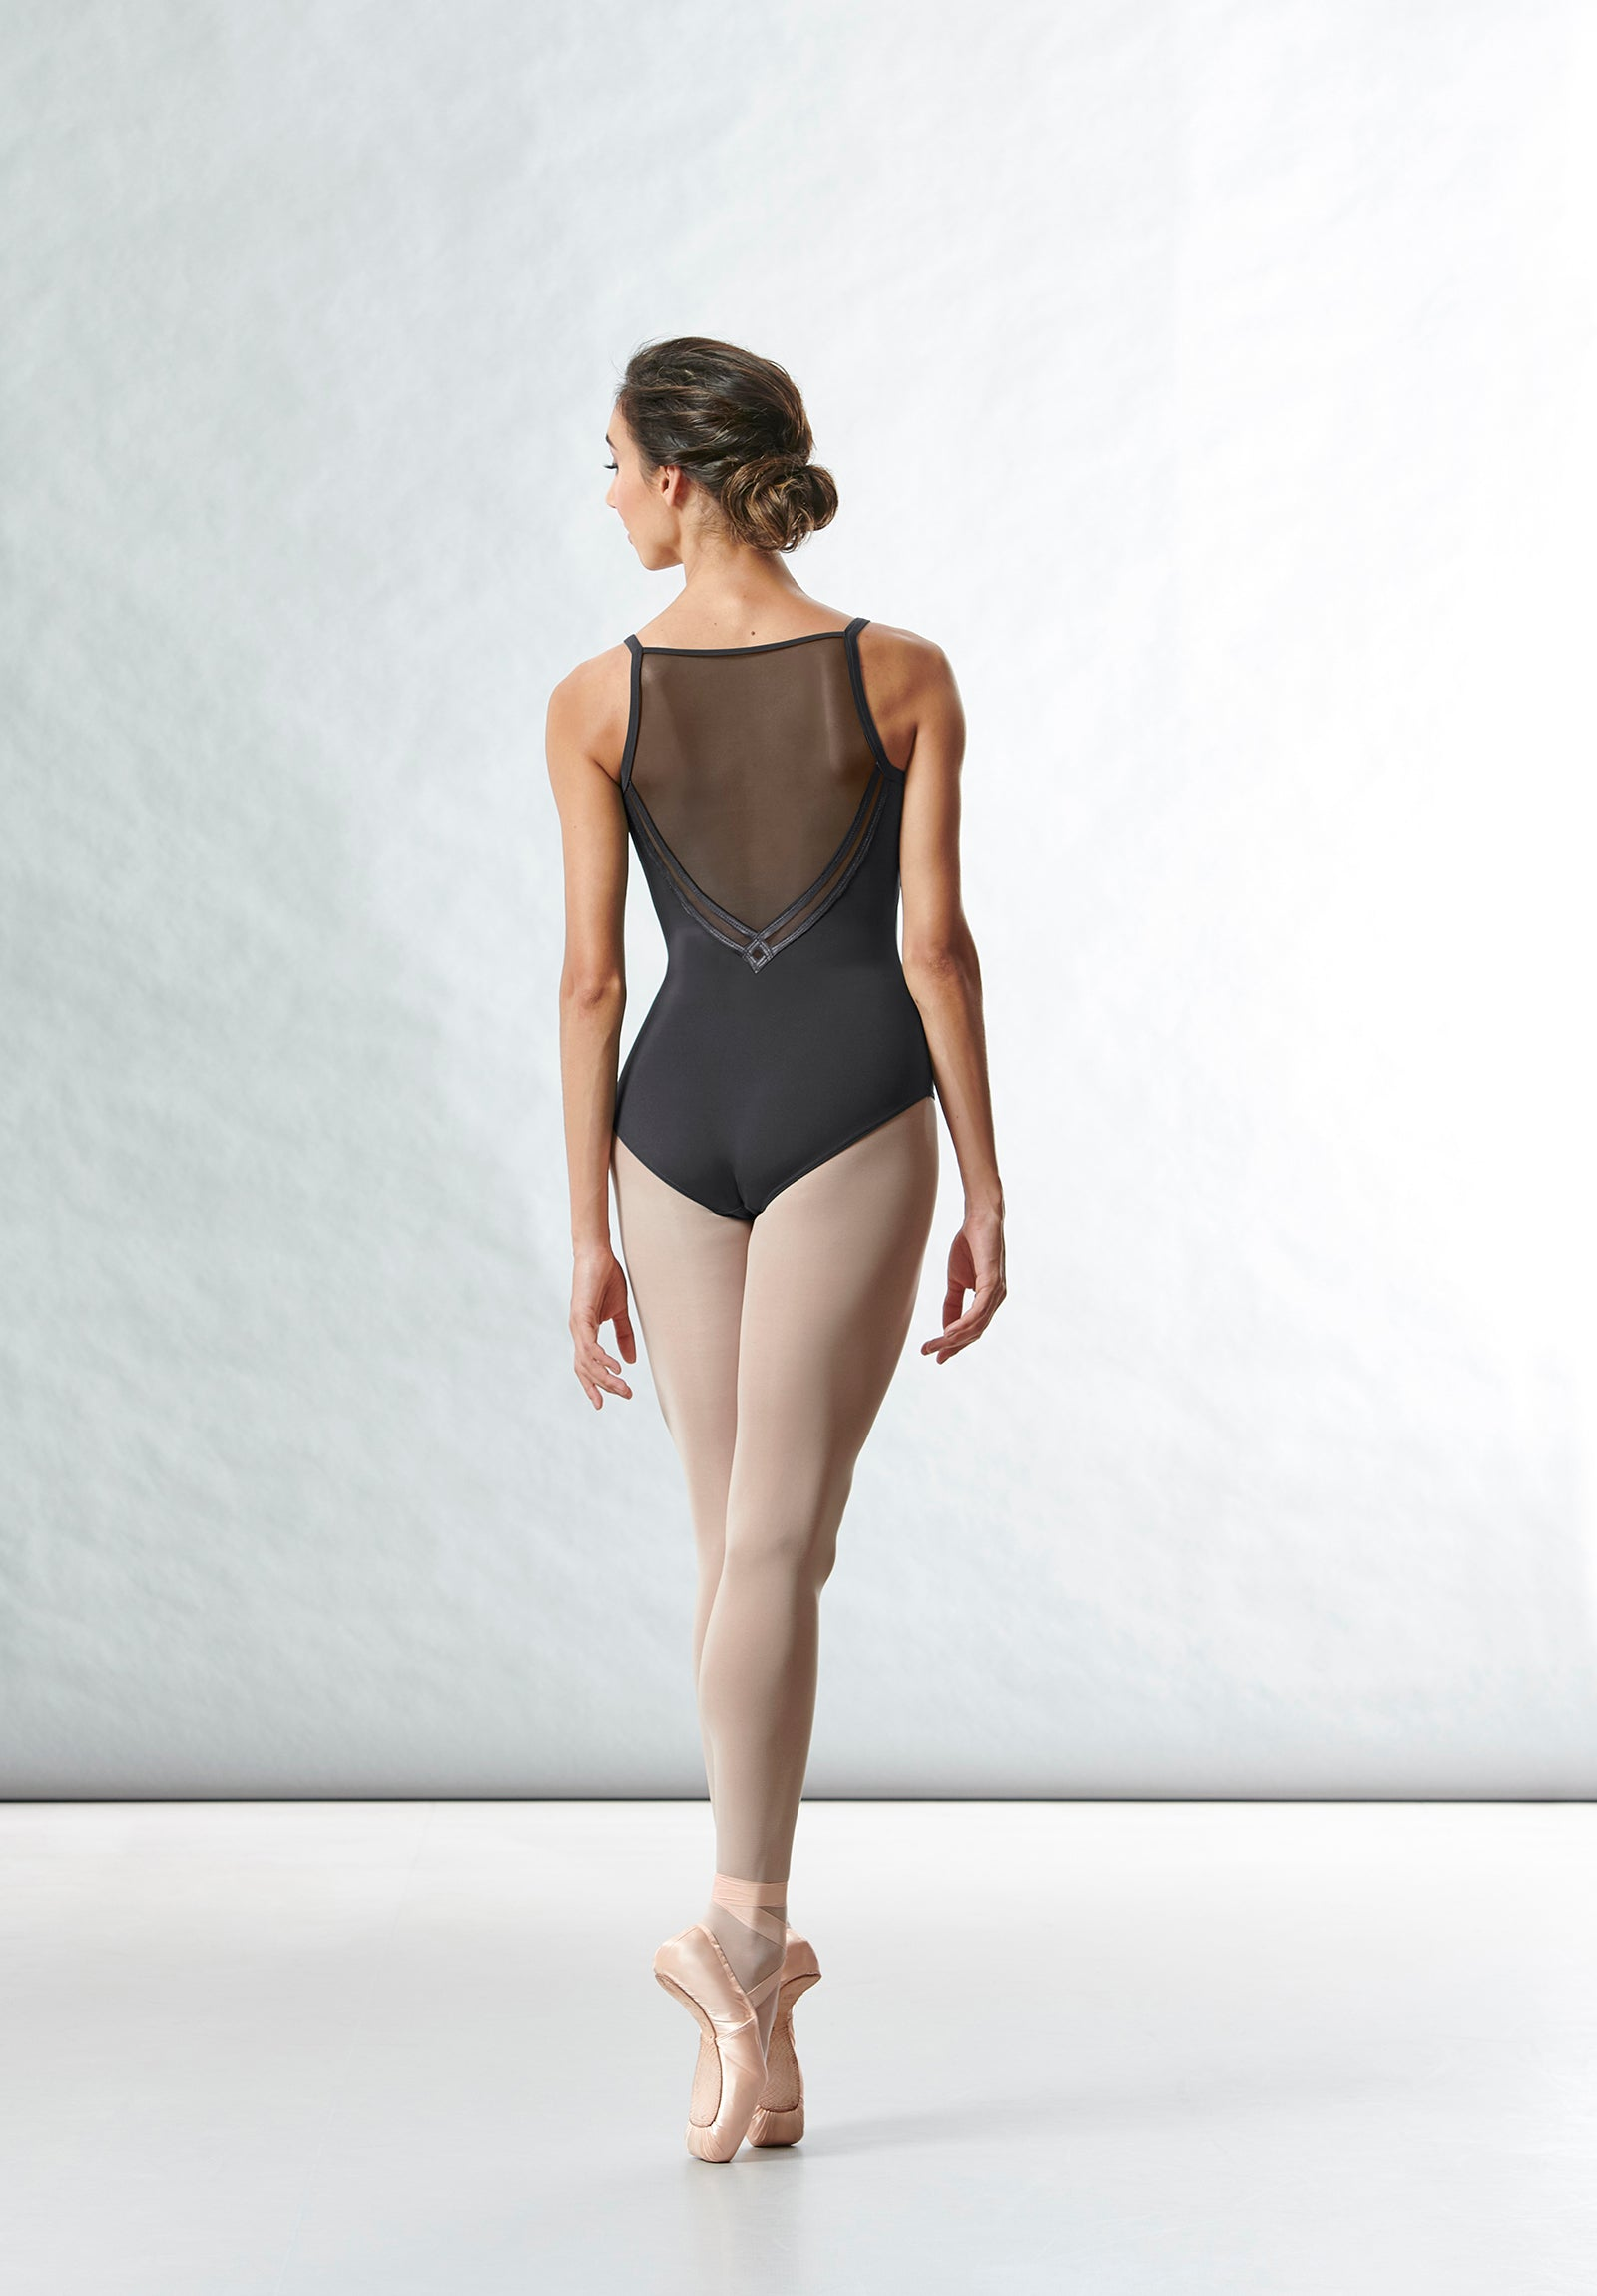 A ballet dancer dancing en pointe wearing the Kora camisole mesh back leotard, pink tights and poine shoes